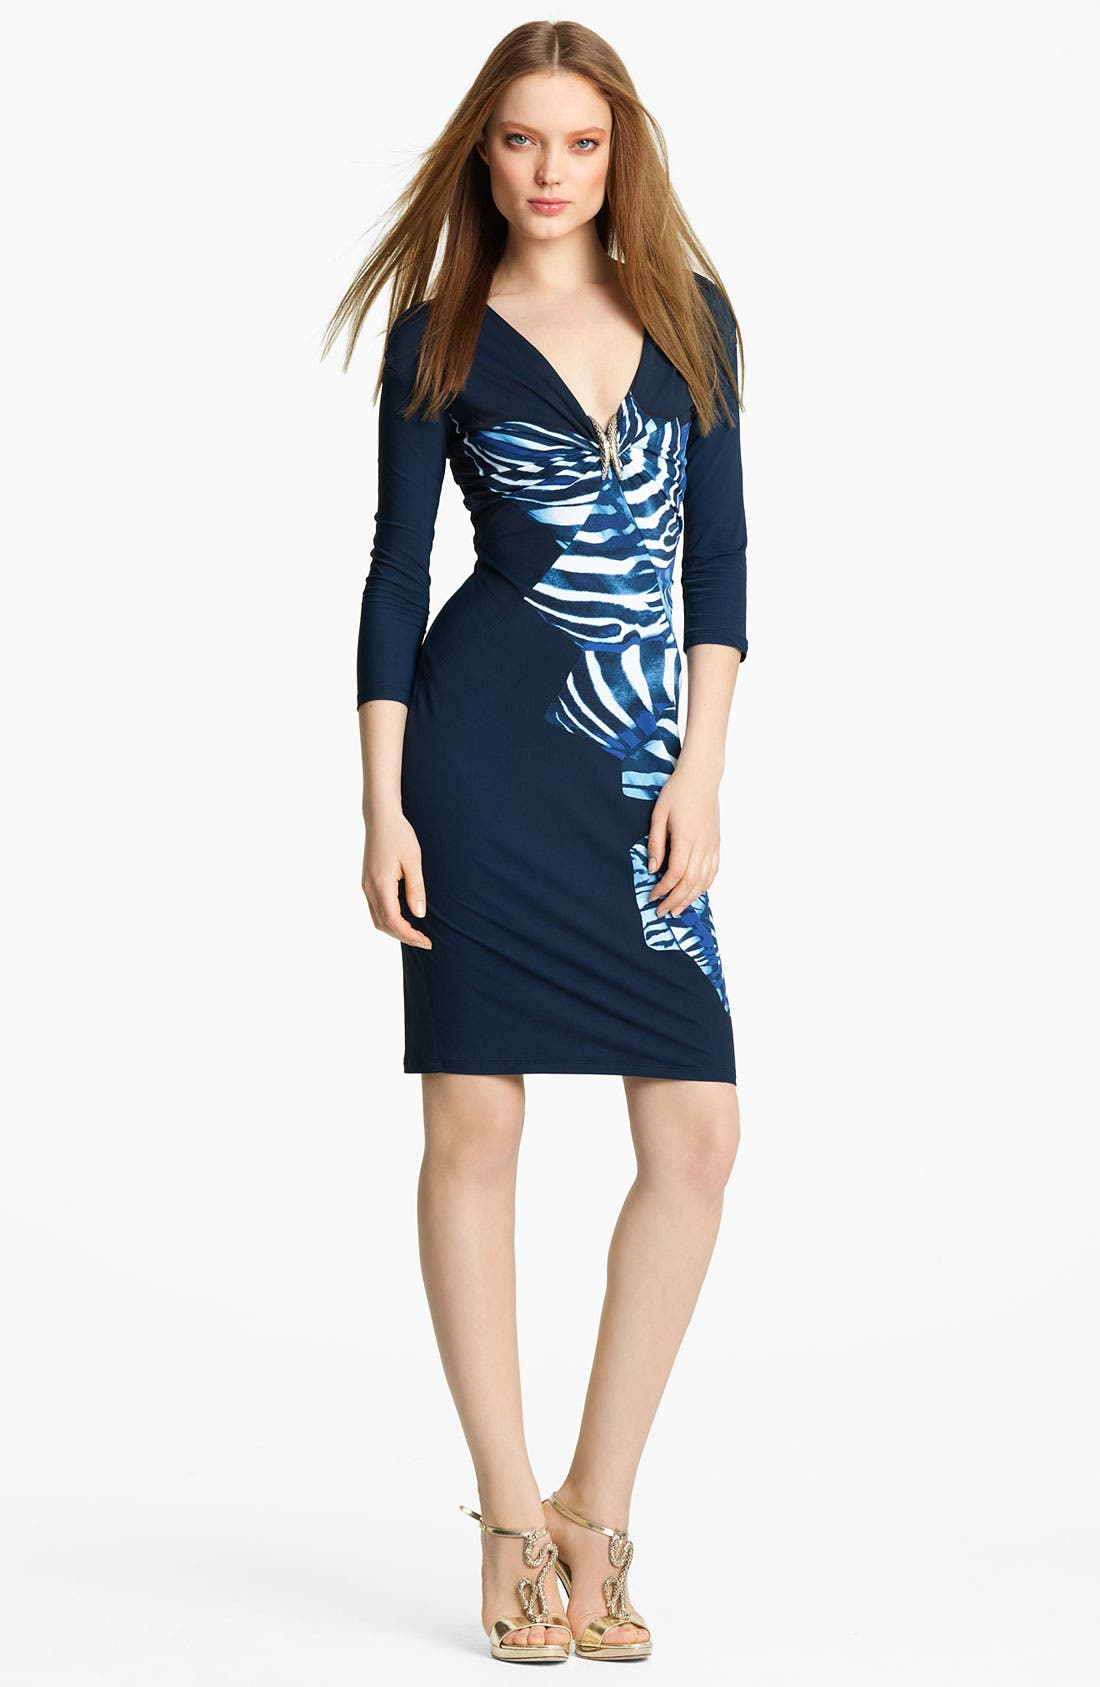 Alternate Image 1 Selected - Roberto Cavalli Zebra Print Dress